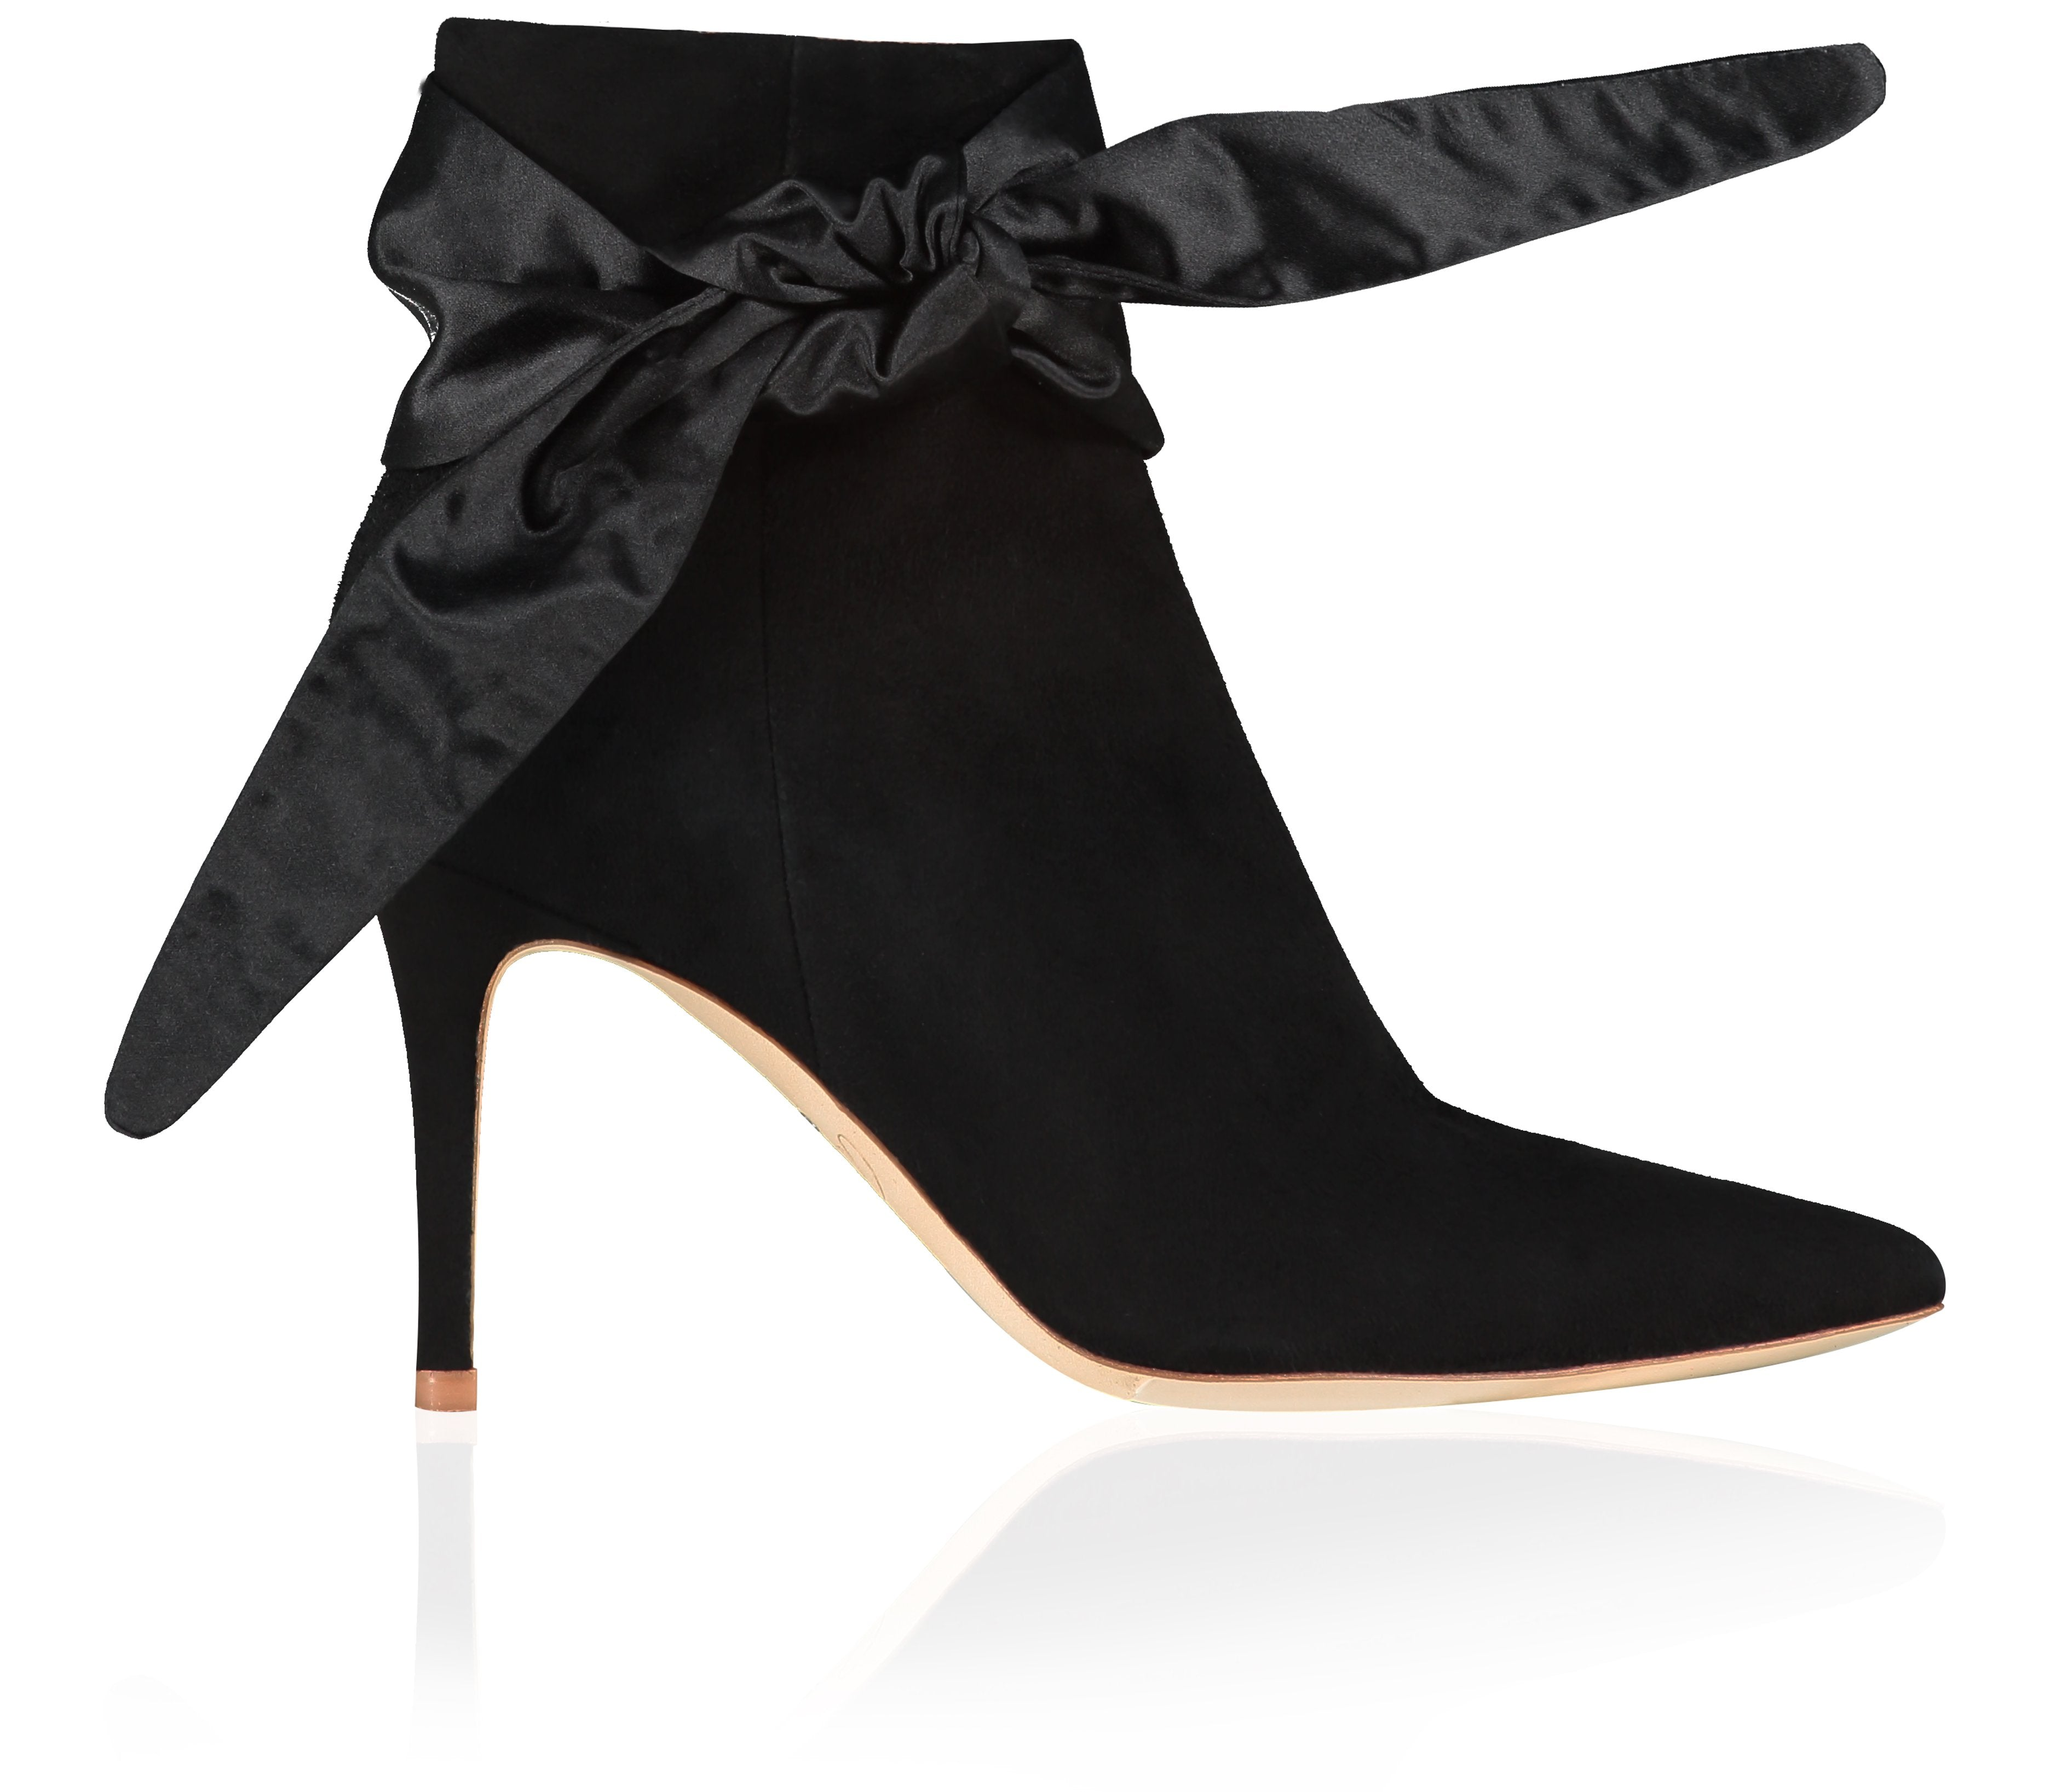 Gigi Jet Luxury Boots with Satin Sash Tie By Emmy London